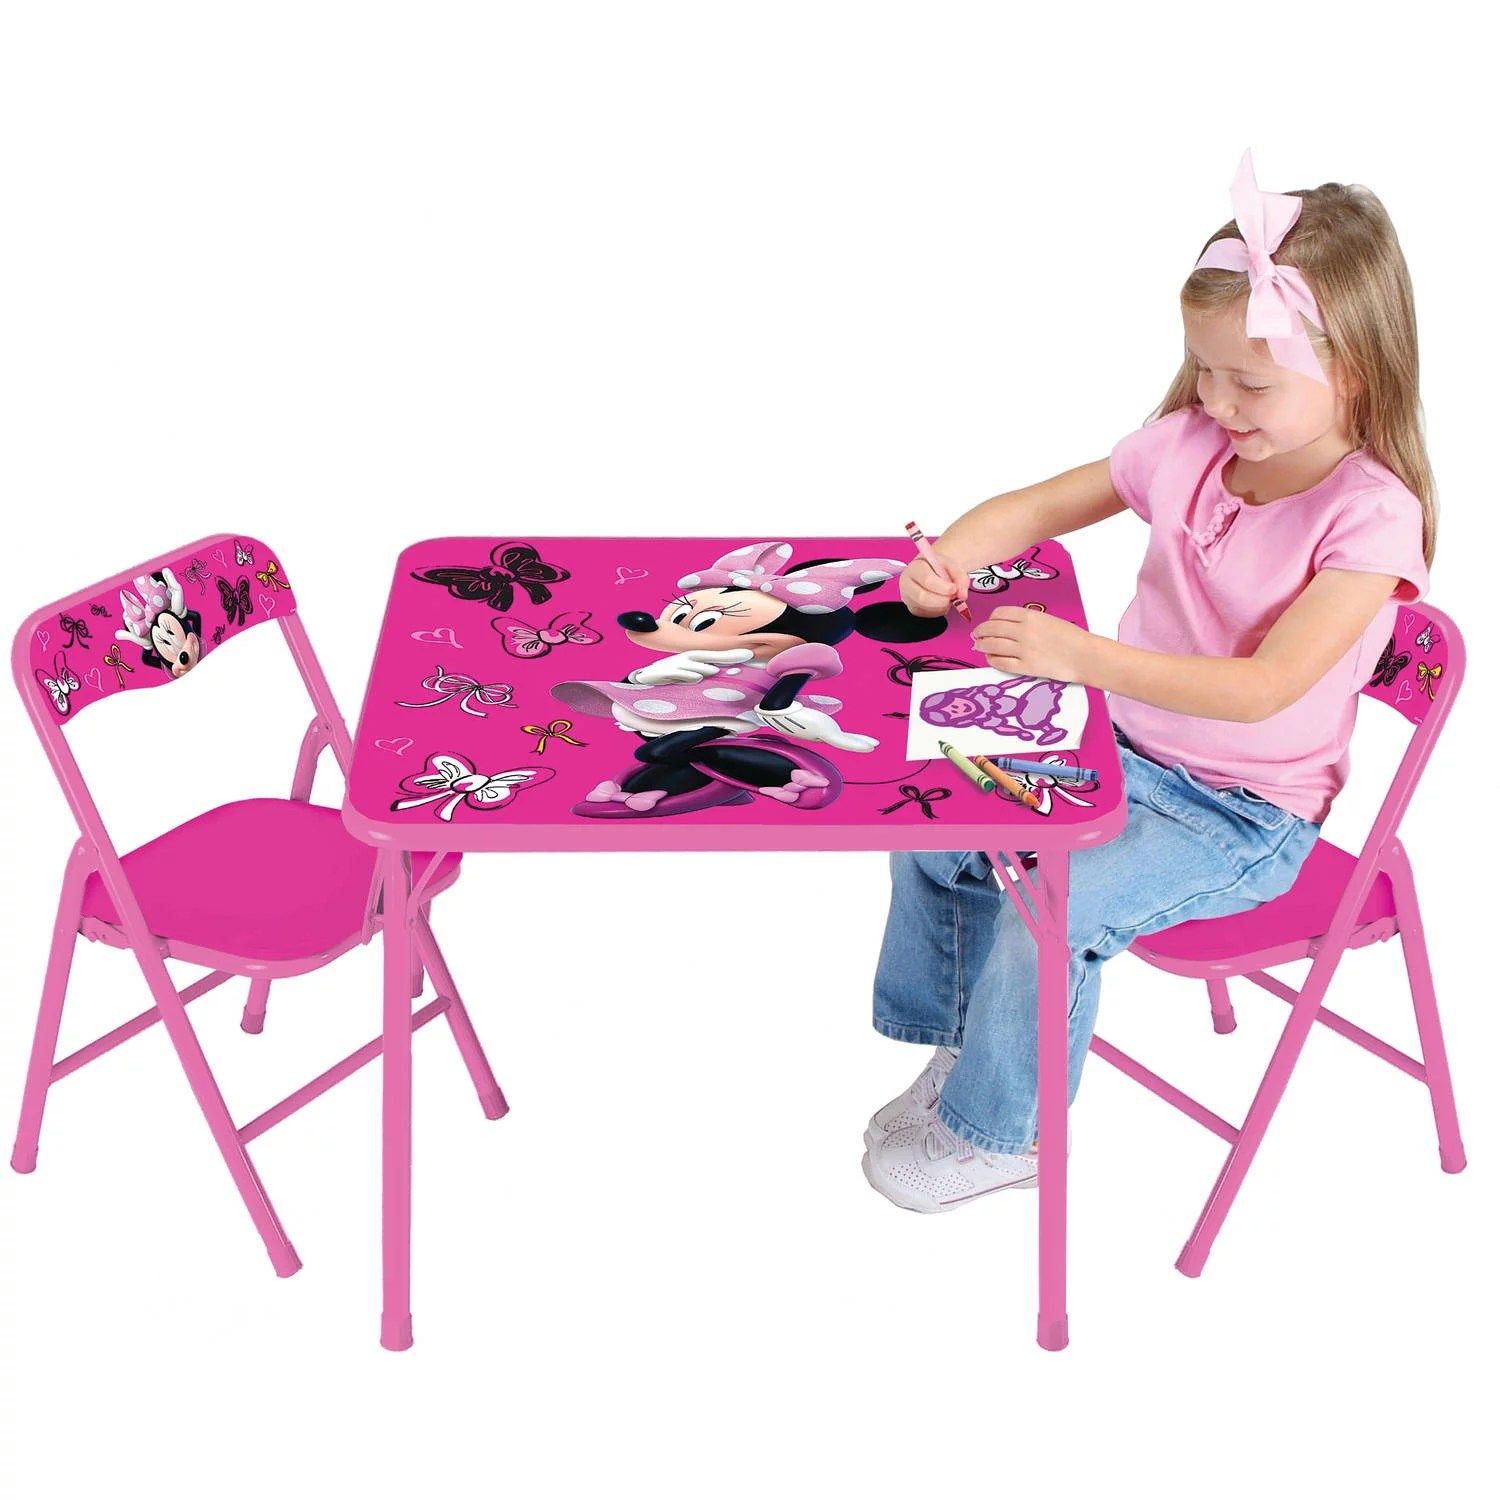 minnie table and chairs macrame swing chair pattern disney mouse first fashionista activity set walmart com